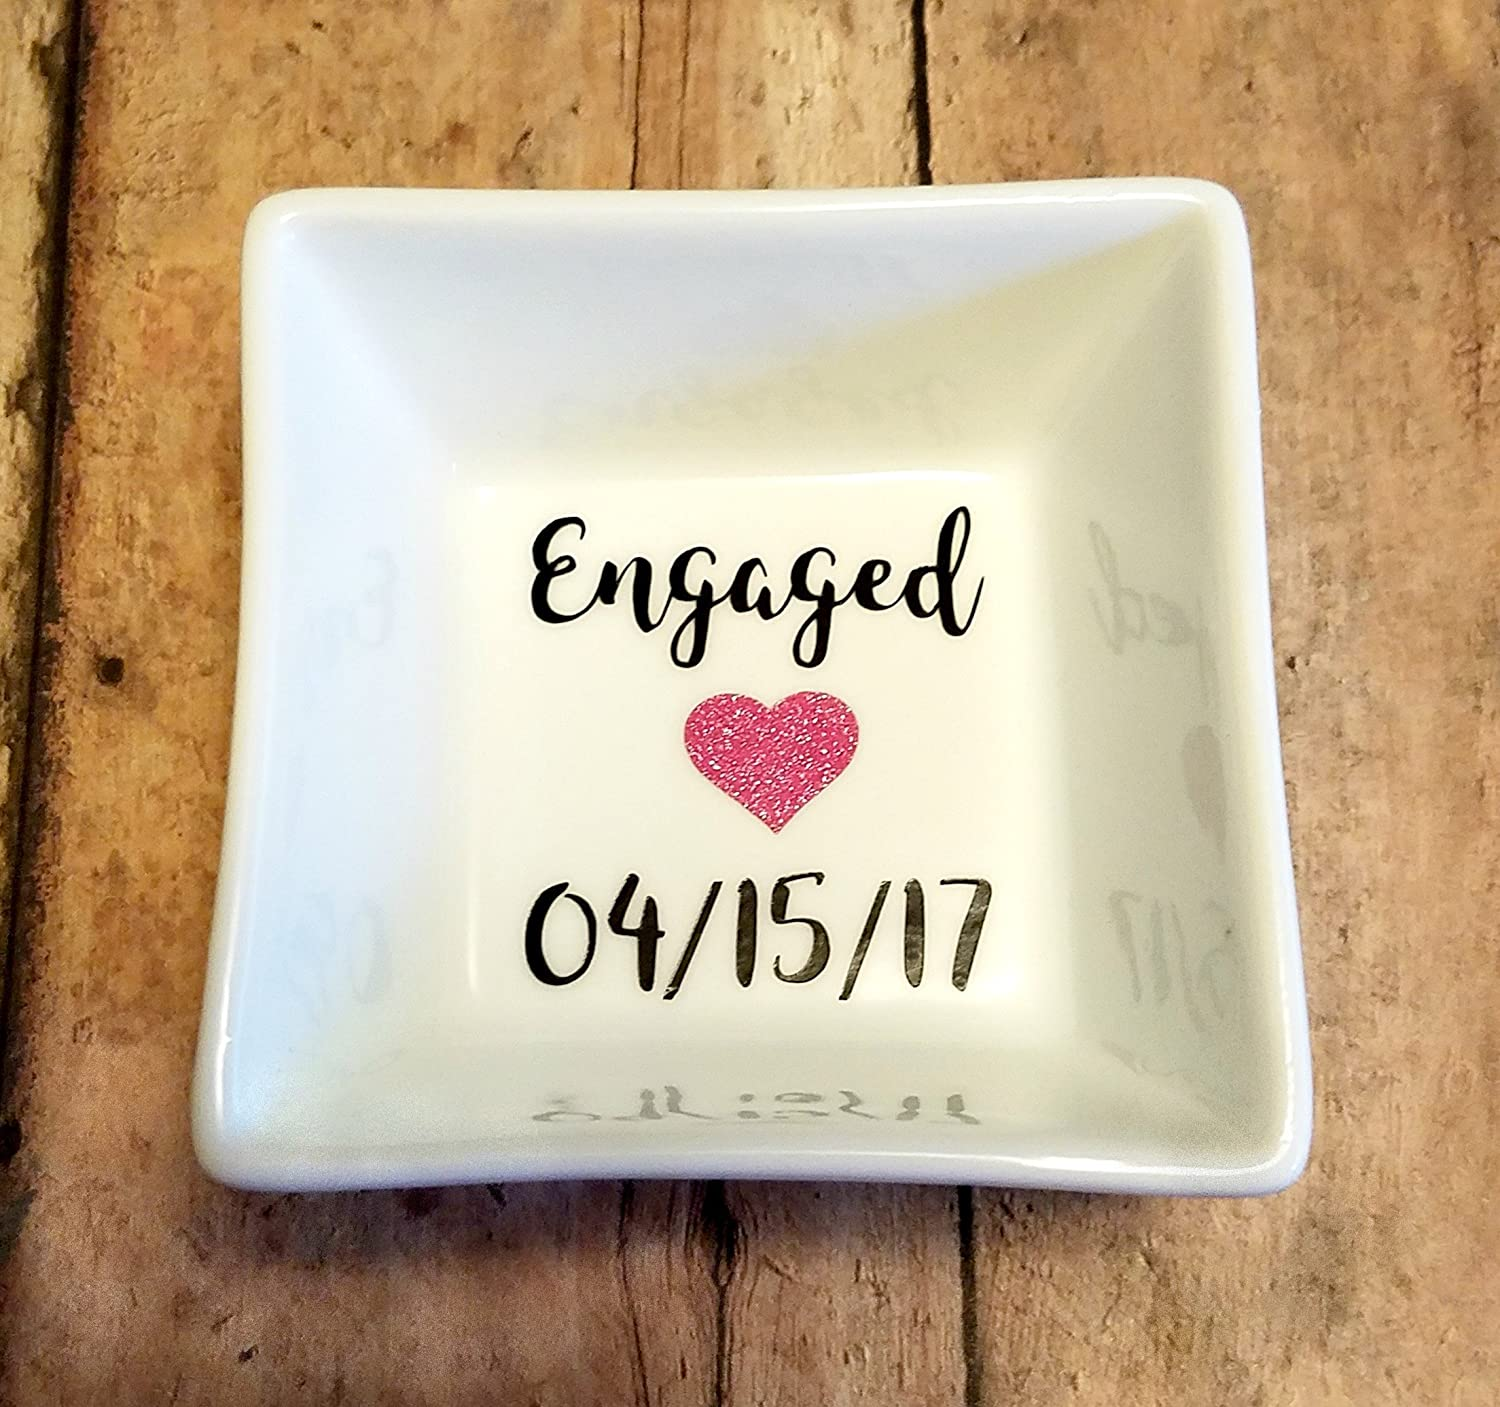 Engaged Jewelry Dish / Ring Dish with Date and Heart